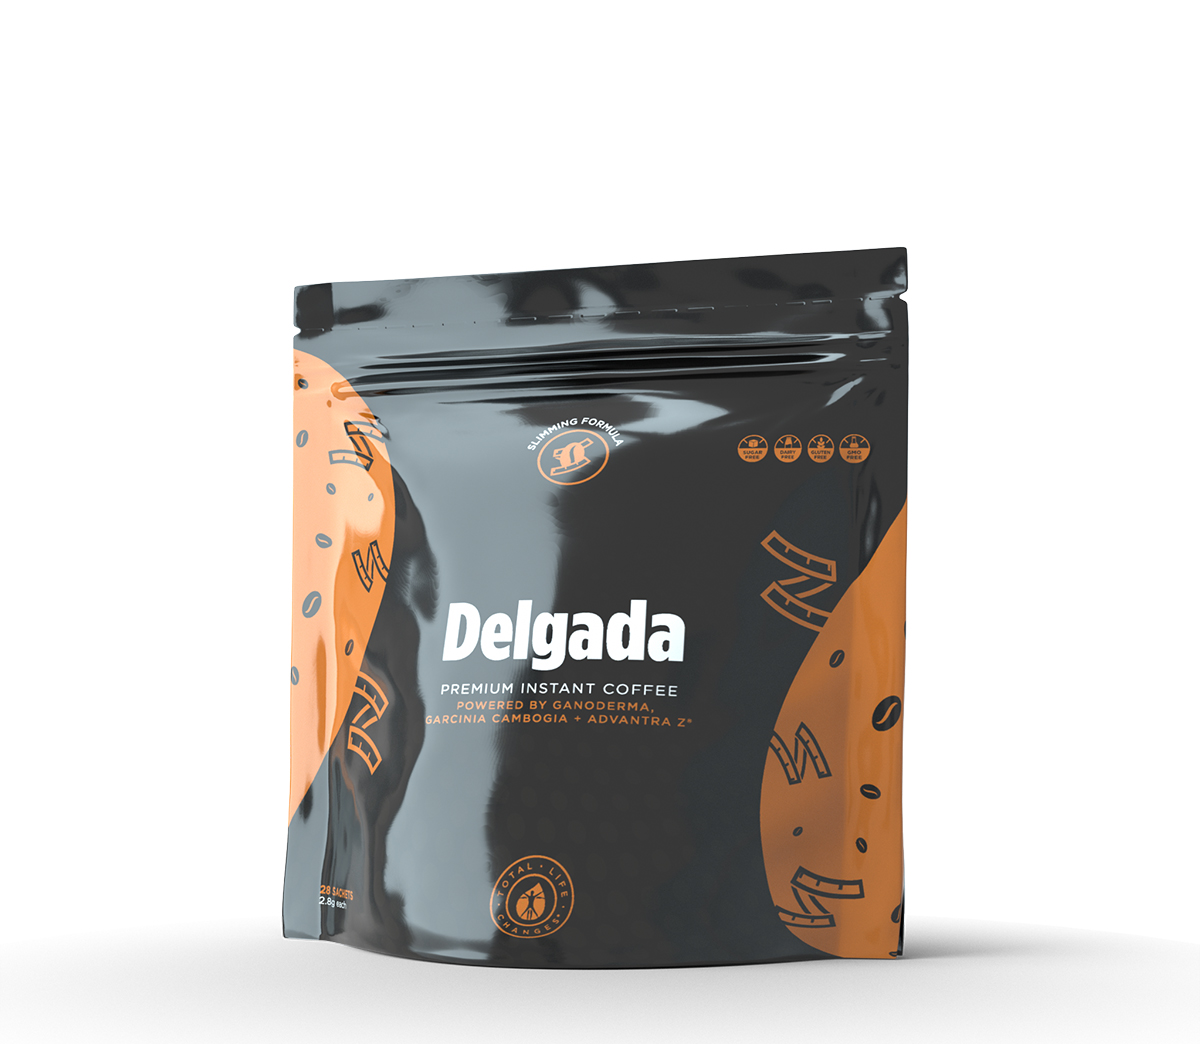 Delgada Coffee - $54.95 USD